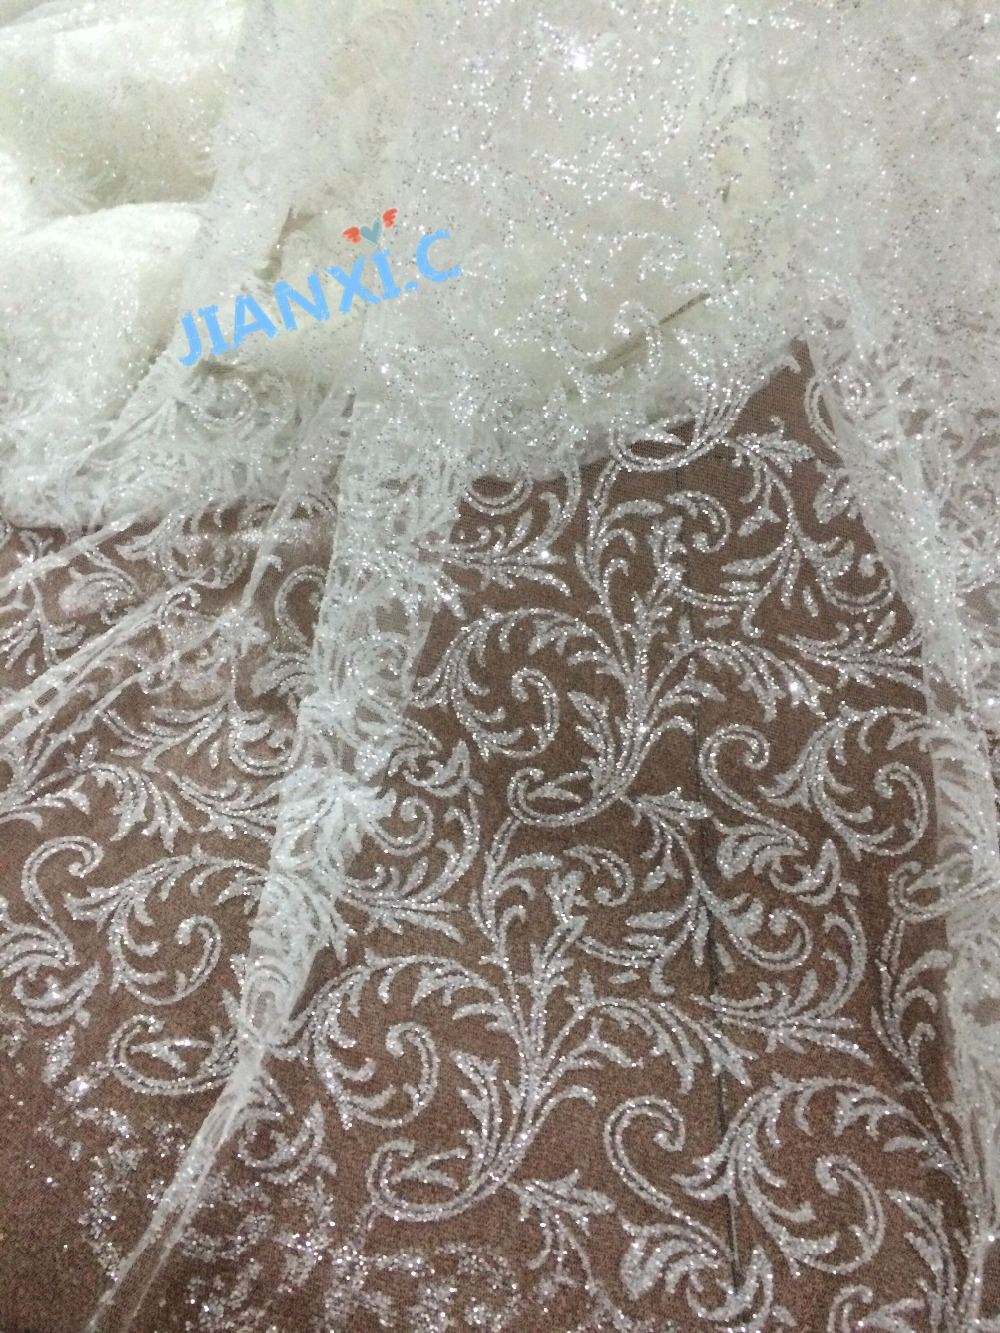 glitter african india mesh tulle lace fabric fashion french net lace JIANXI C 112958 with glued